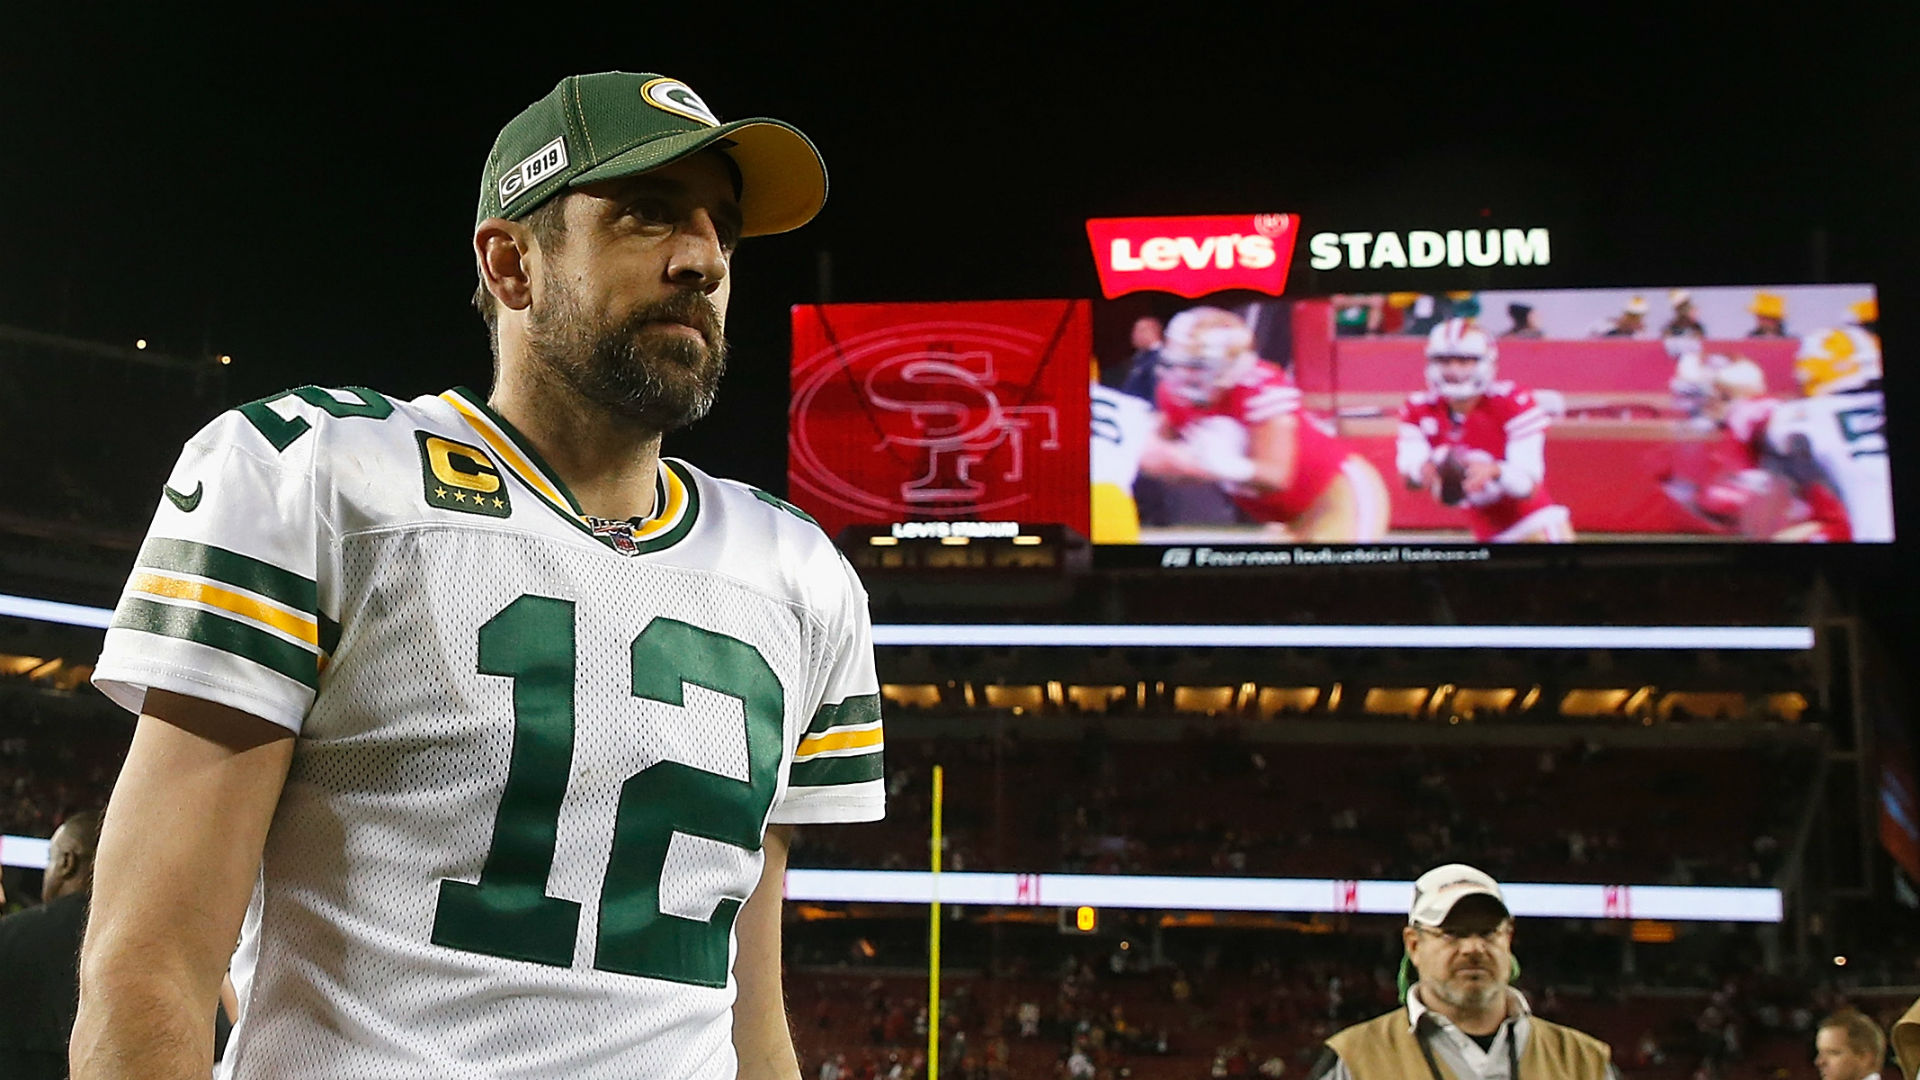 Aaron Rodgers candidly discusses Packers' Jordan Love pick: 'I poured myself some tequila'